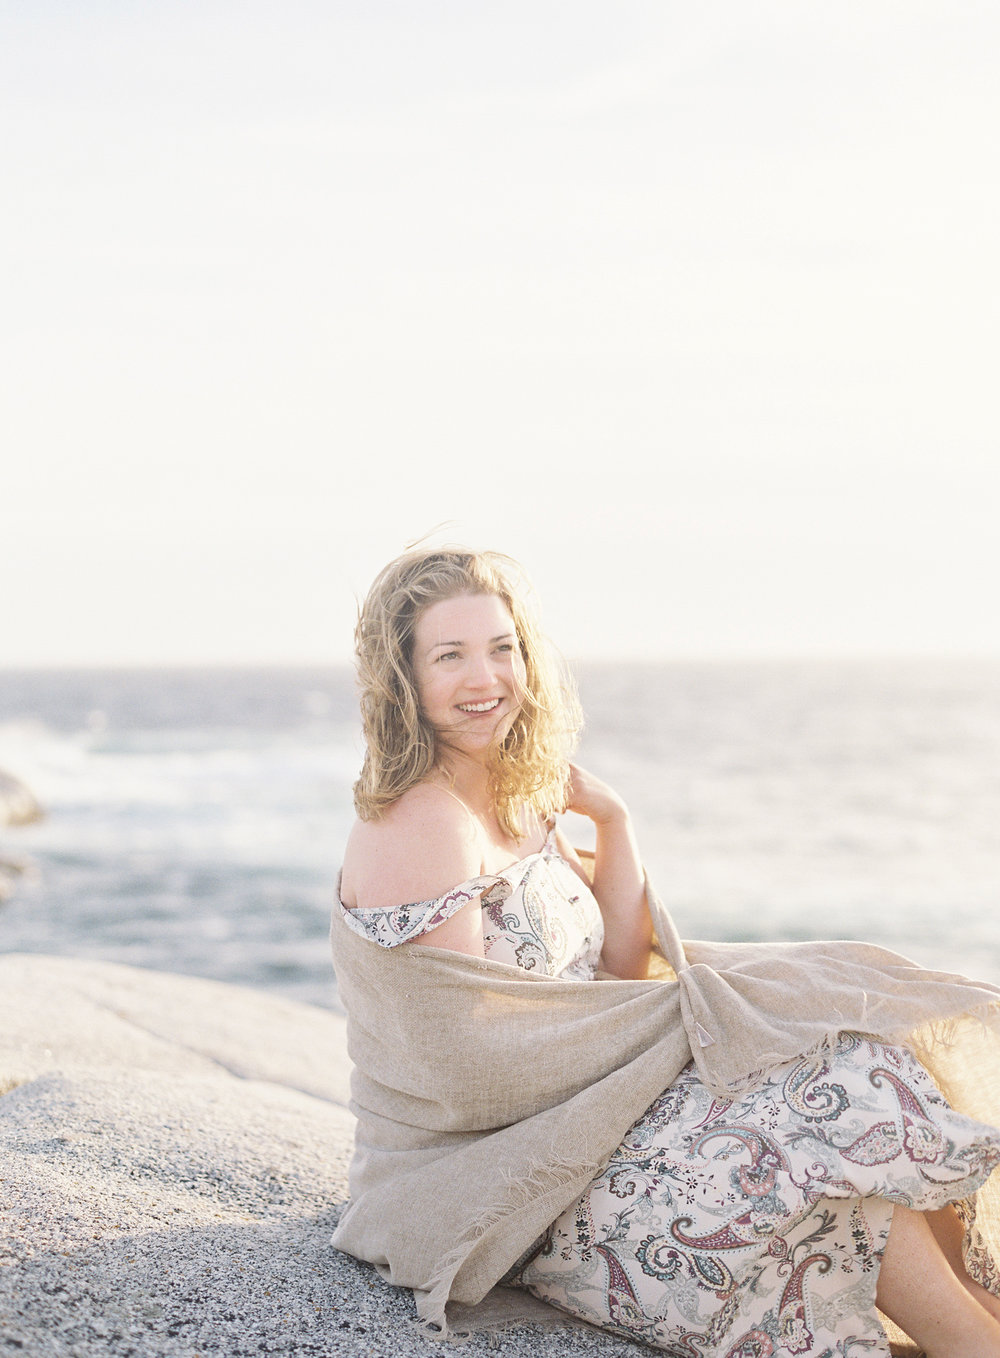 Jacqueline Anne Photography - Alex and Andrew Engagement at Peggy's Cove - Halifax-93.jpg